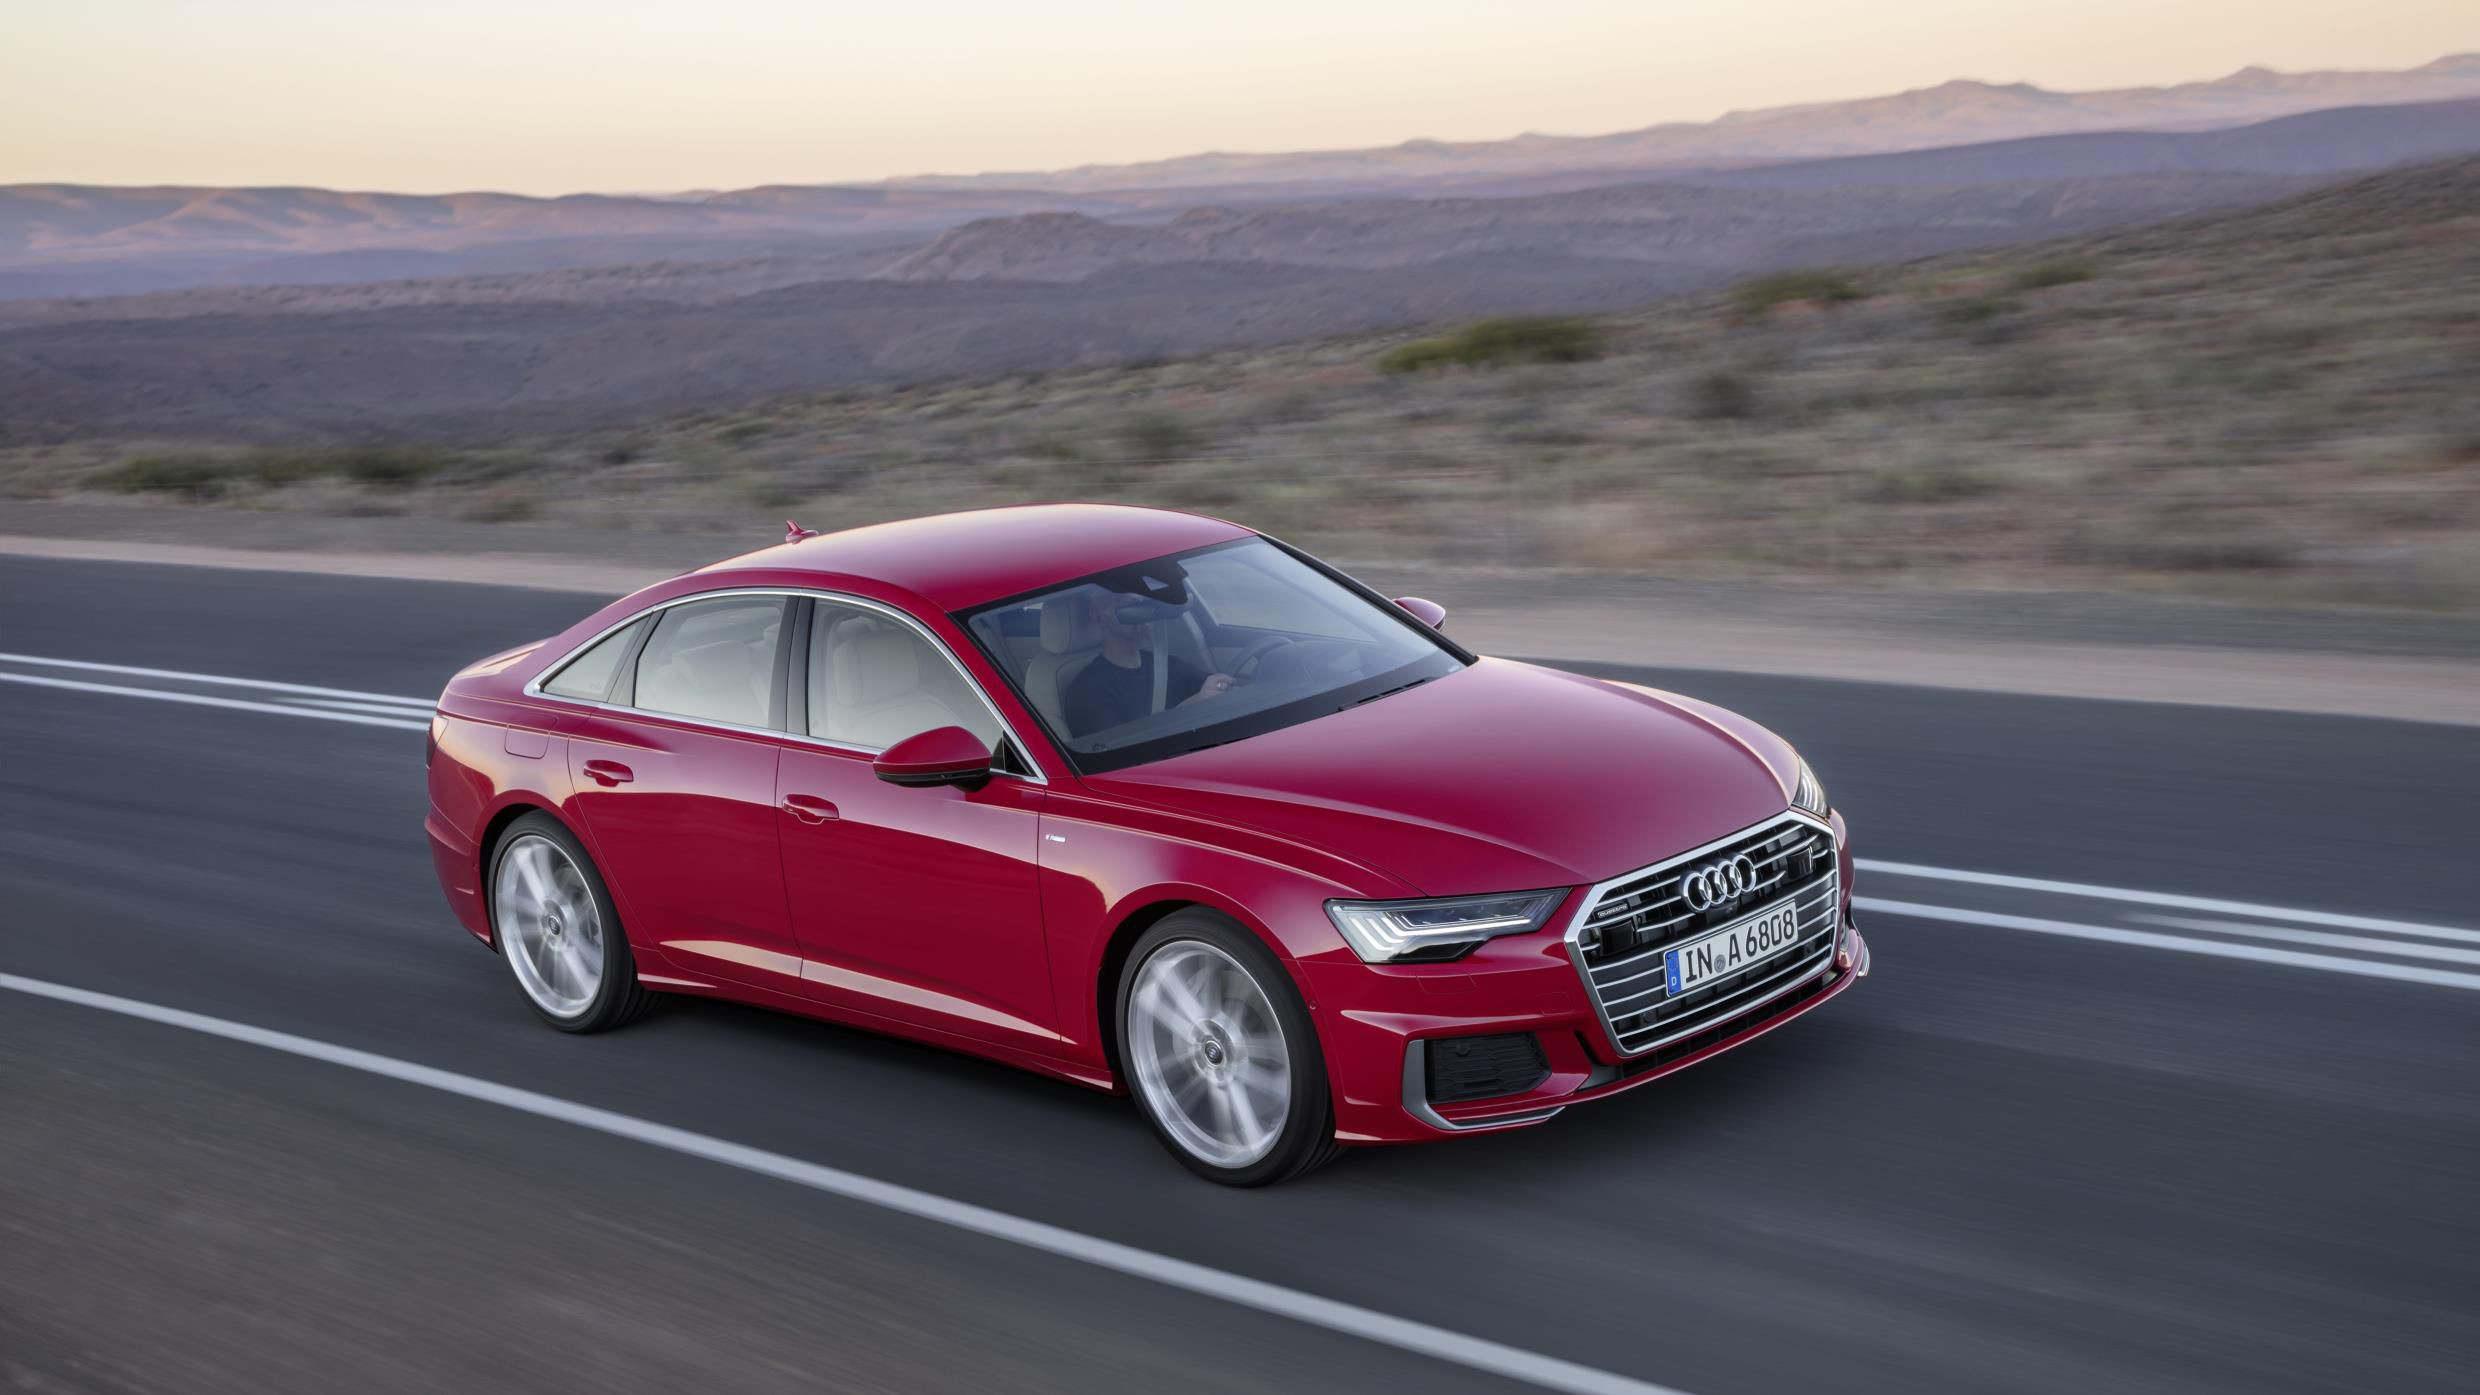 Red Audi A6 driving side on through a desert